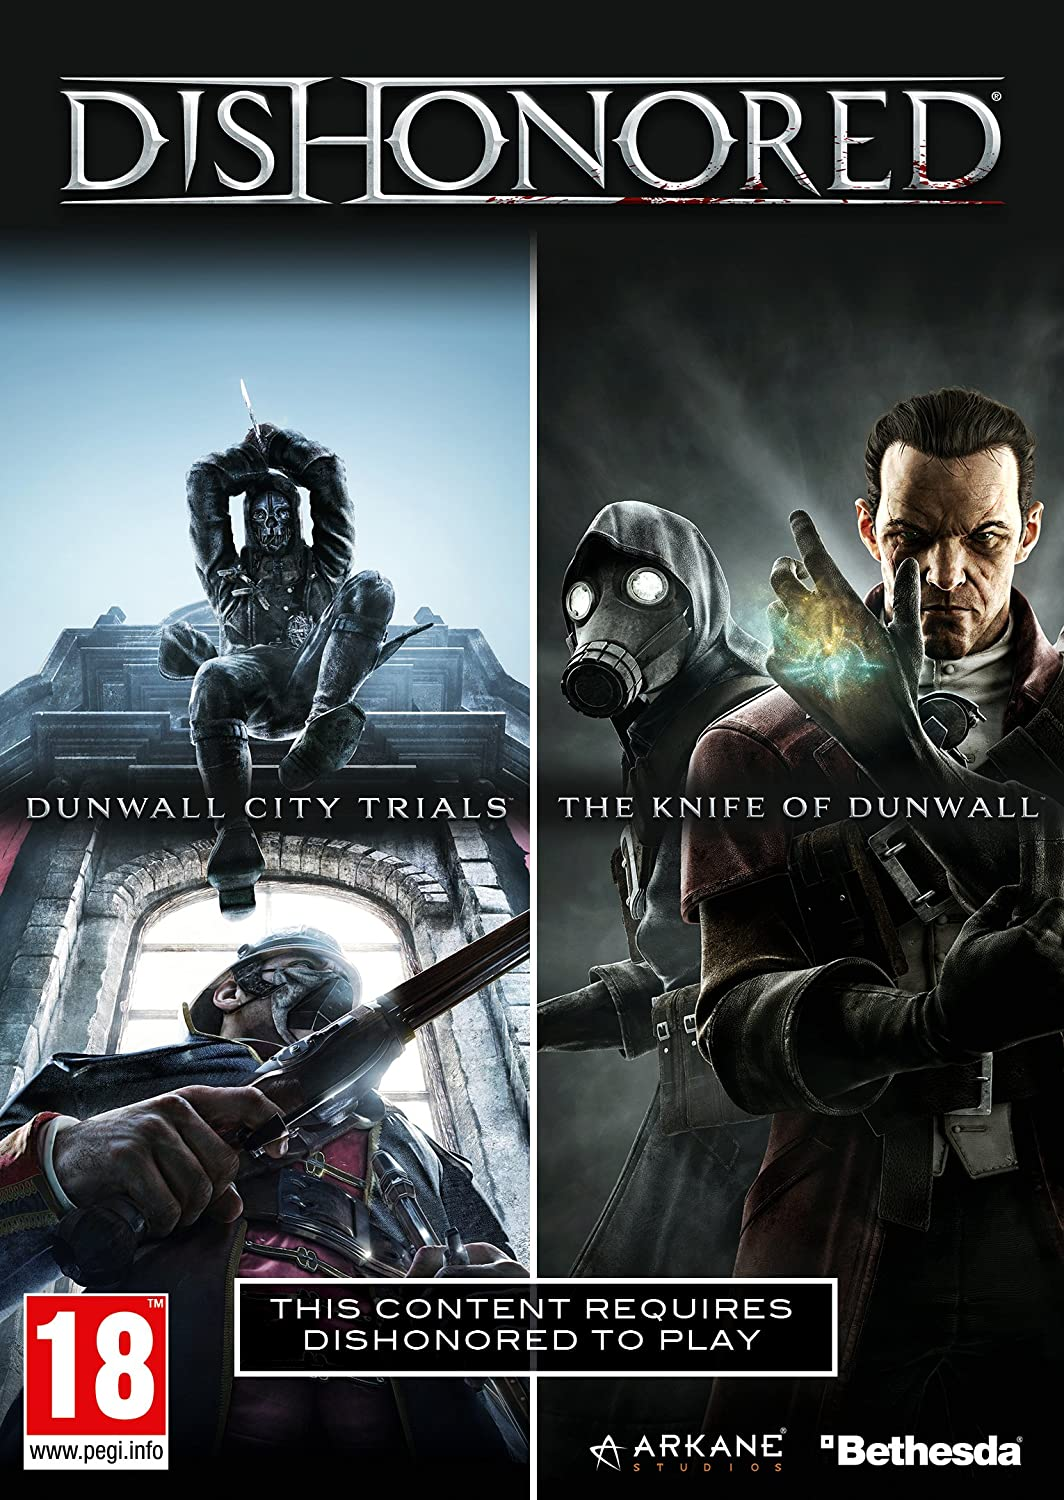 Dishonored Dlc Double Pack: Dunwall City Trials And The Knife Of Dunwall [Importación Inglesa]: Amazon.es: Videojuegos